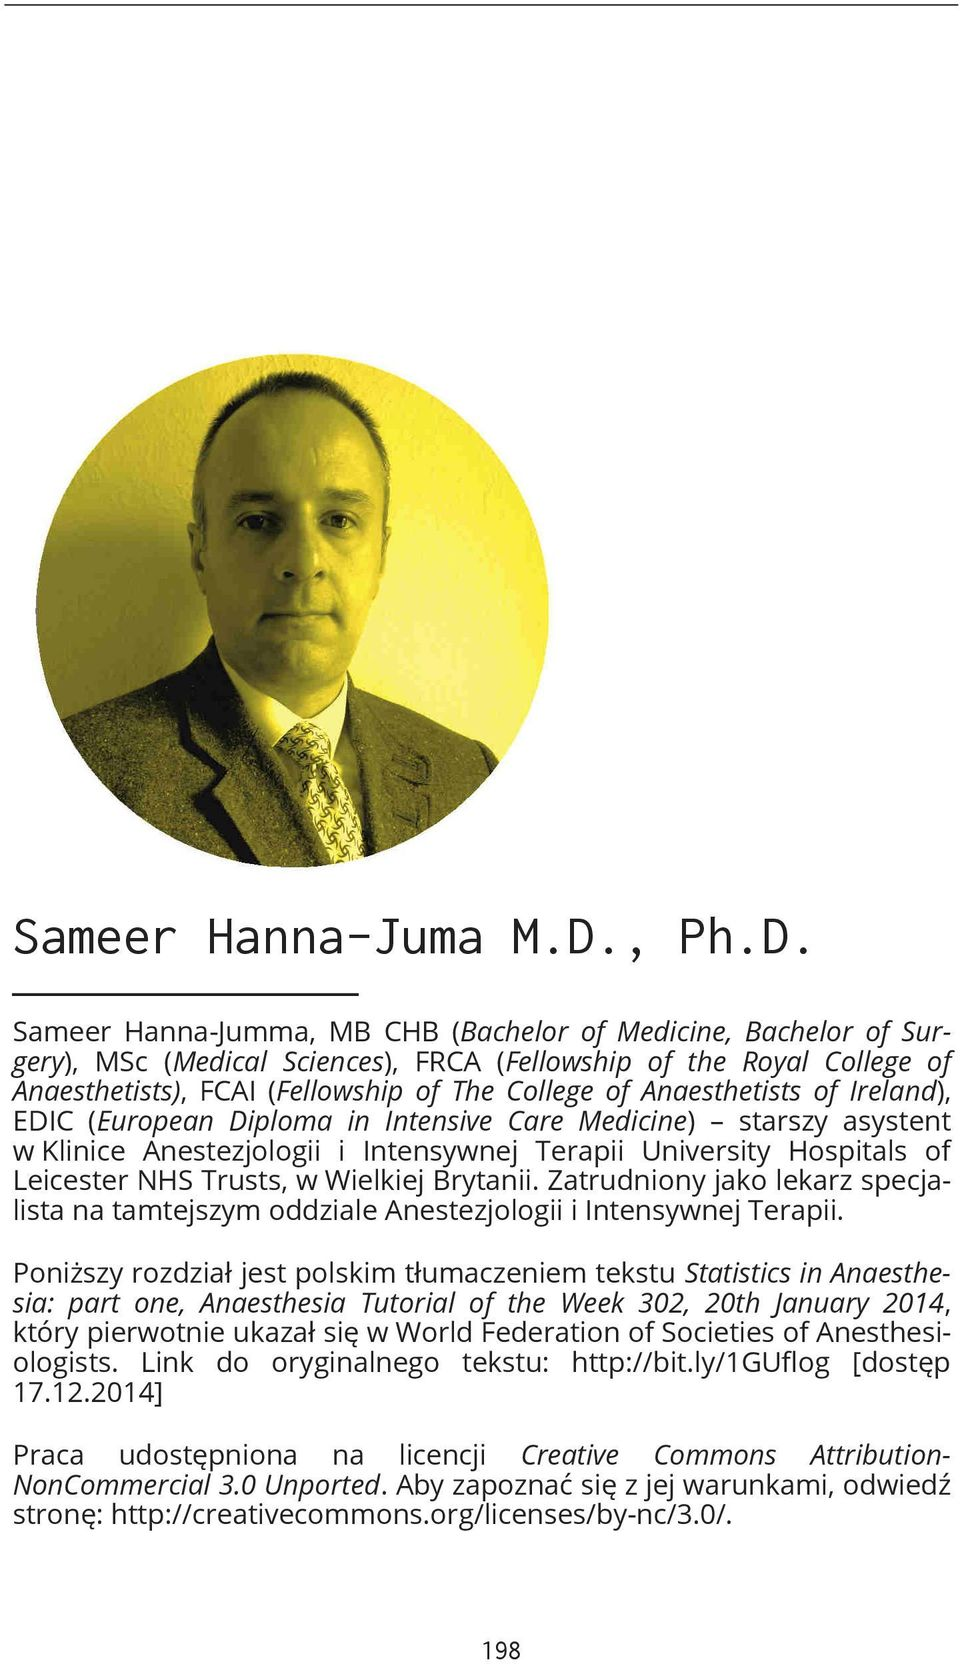 Sameer Hanna-Jumma, MB CHB (Bachelor of Medicine, Bachelor of Surgery), MSc (Medical Sciences), FRCA (Fellowship of the Royal College of Anaesthetists), FCAI (Fellowship of The College of